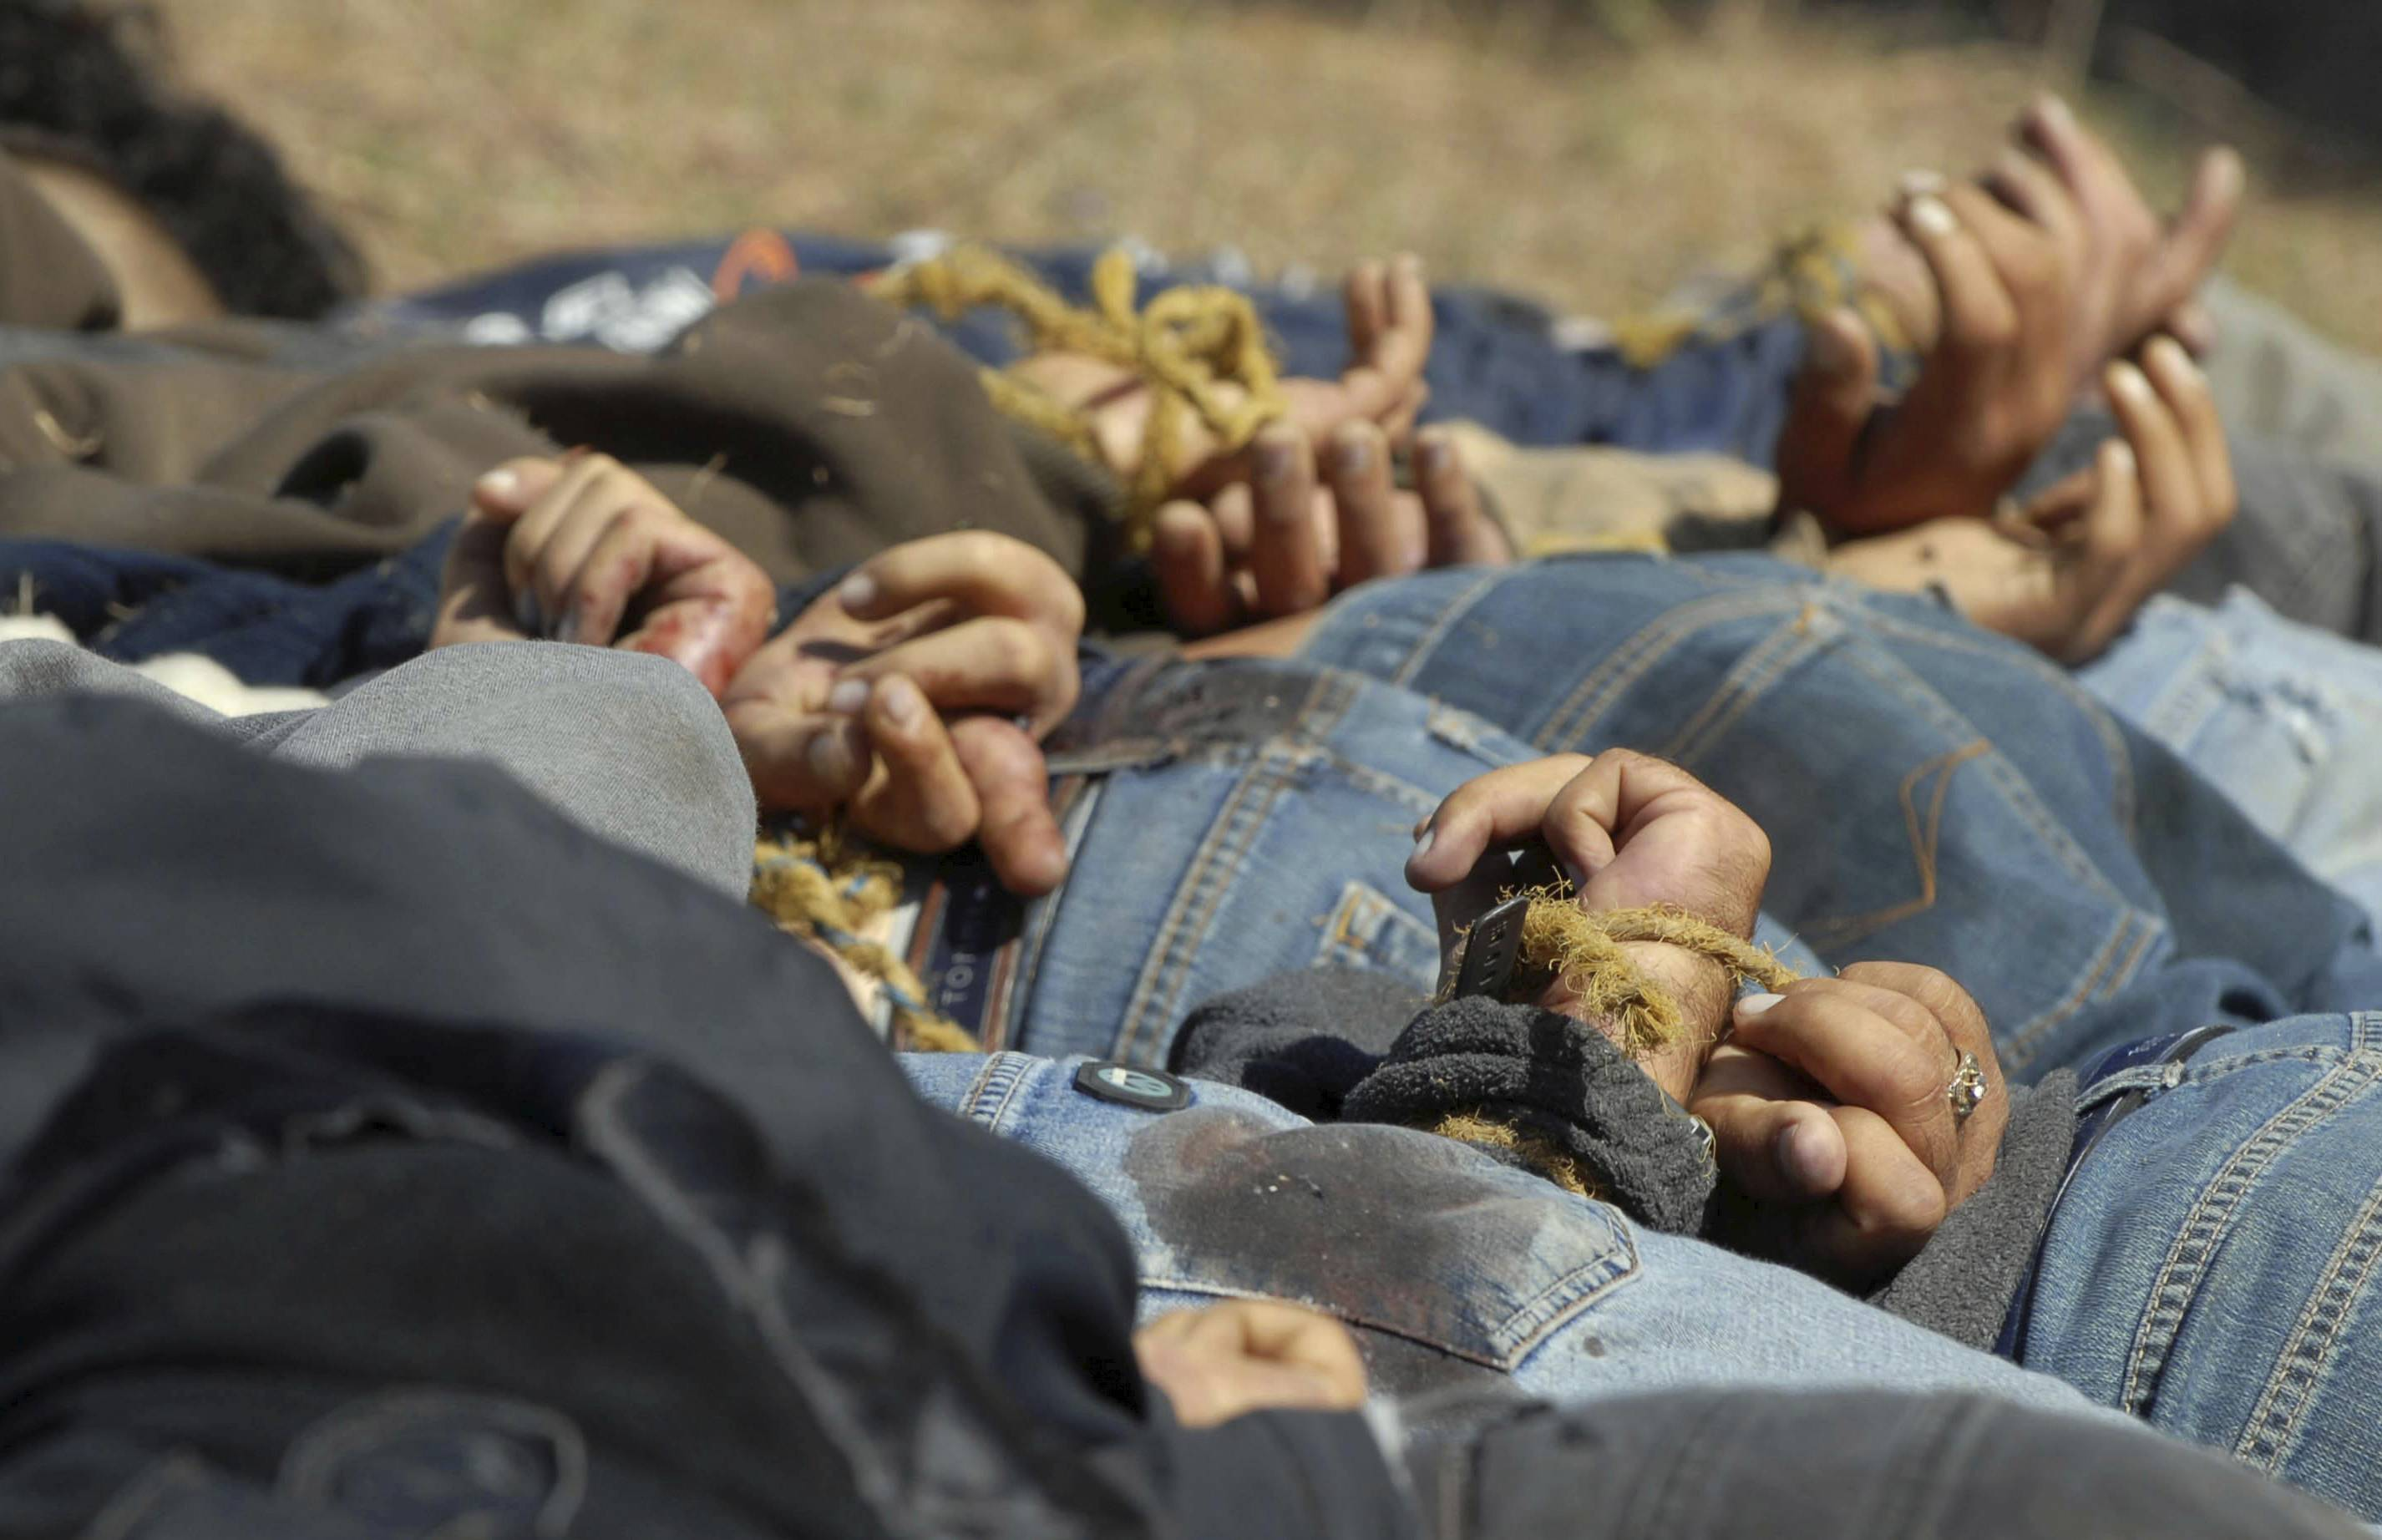 "In this Dec. 4, 2008, file photo, bodies from a total of 13 bullet-ridden men, with their hands tied behind their backs, victims of the drug war involving Joaquin ""El Chapo"" Guzman's Sinaloa cartel, lie in a field near the town of San Ignacio in the pacific state of Sinaloa, Mexico. Guzman and his cohorts waged an increasingly bloody war over the year with rival gangs."